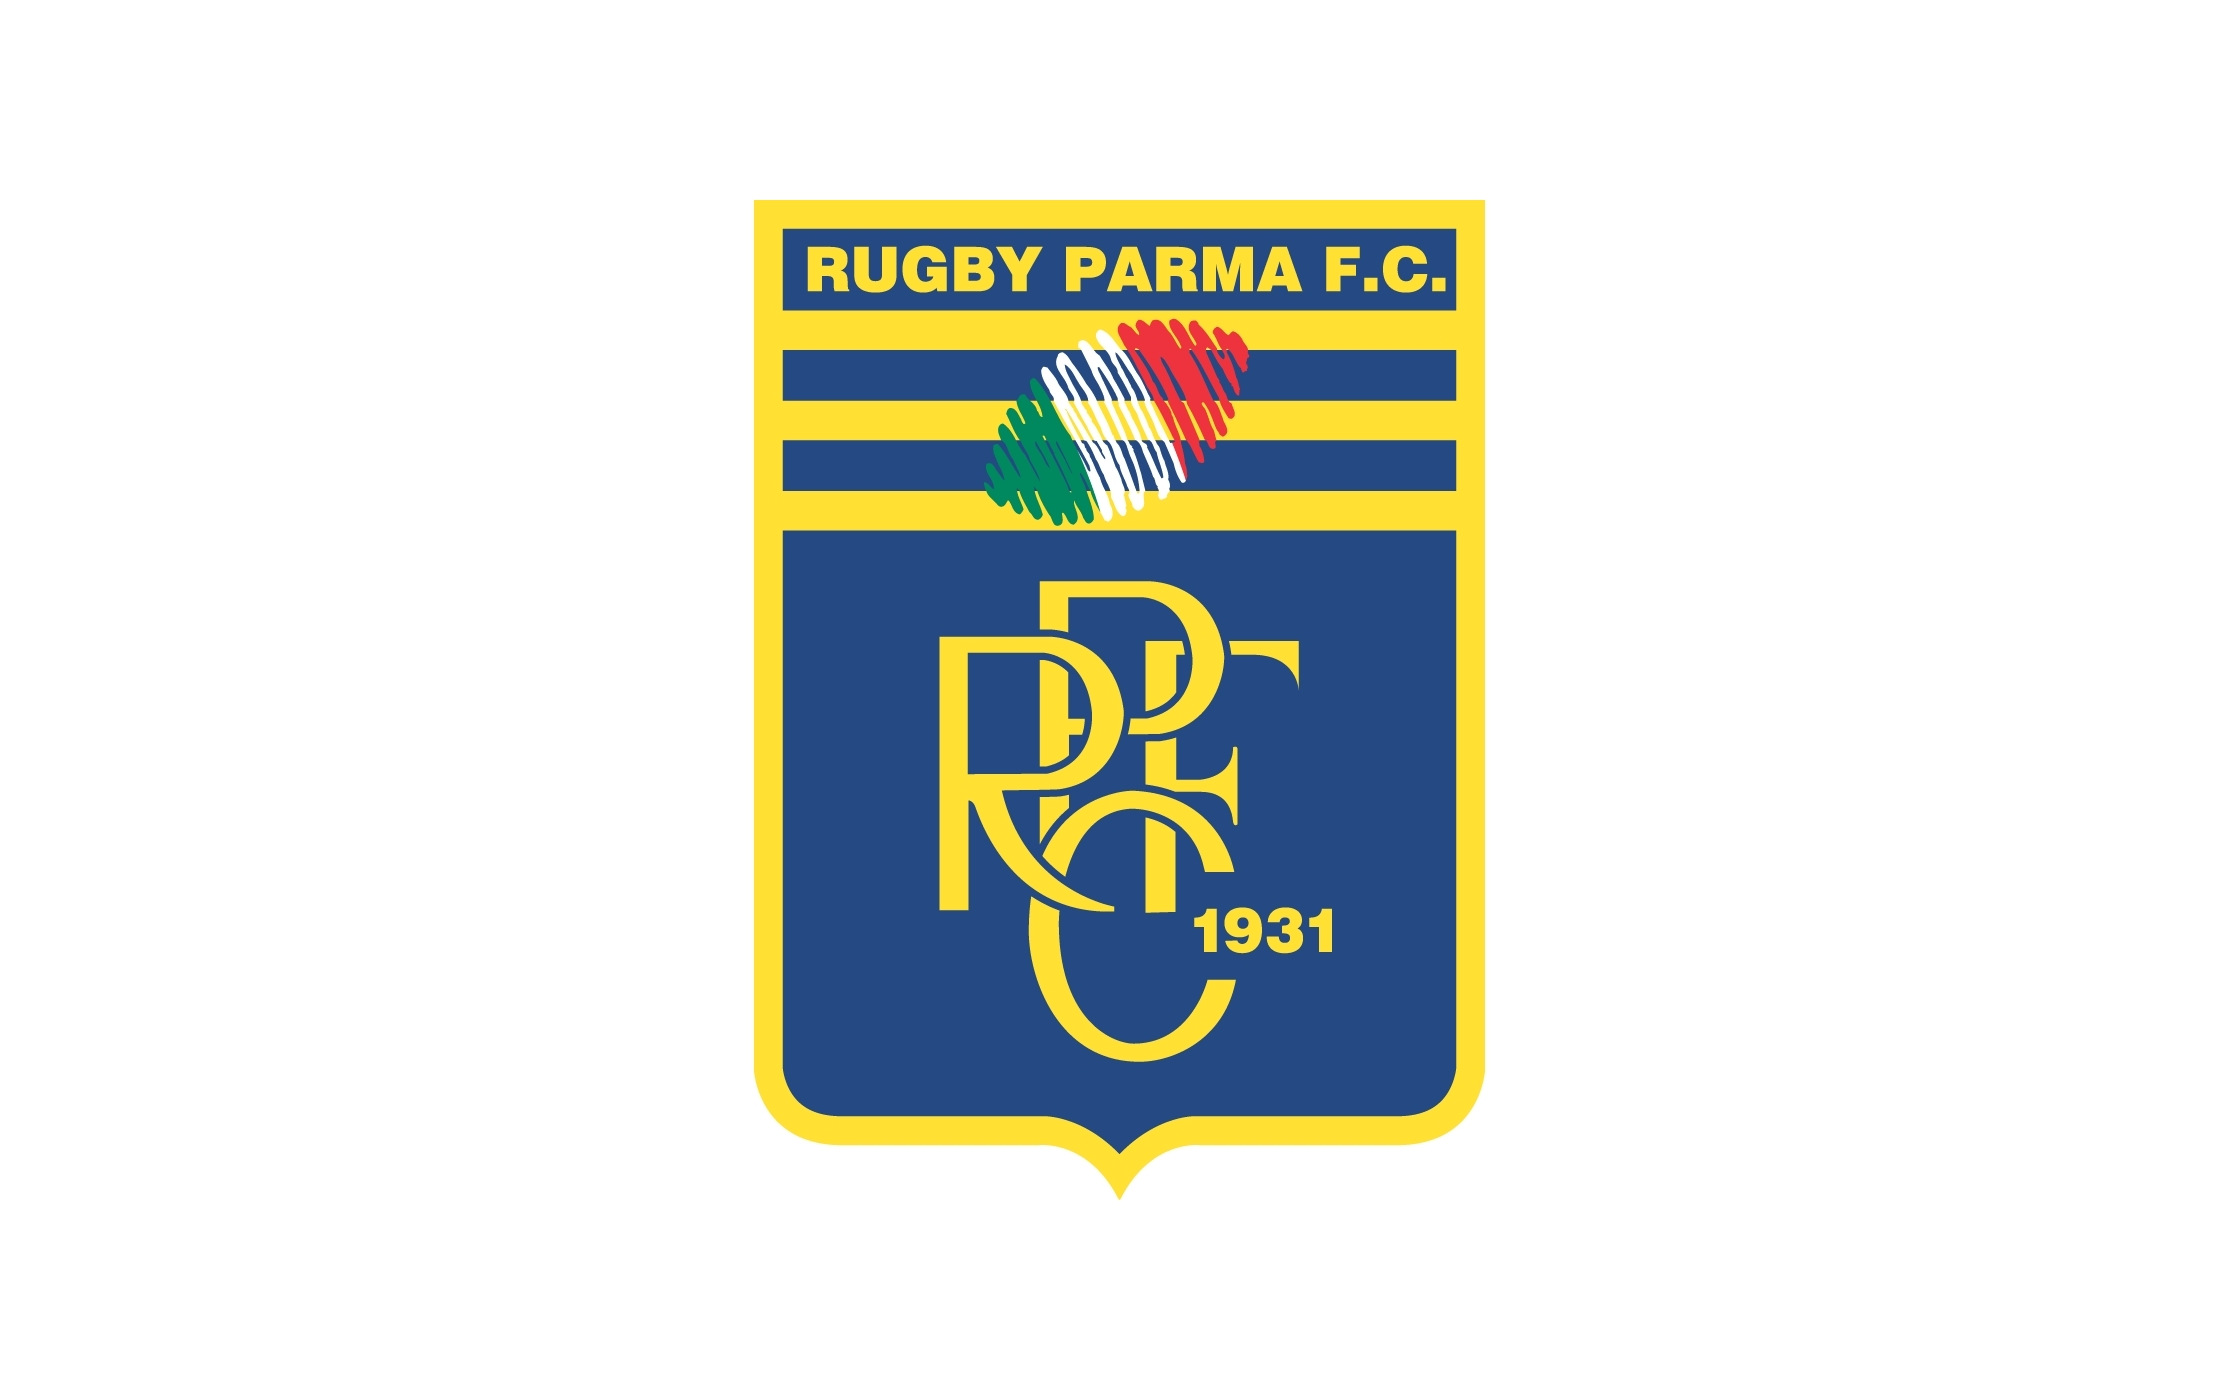 rugby-parma-hp-2